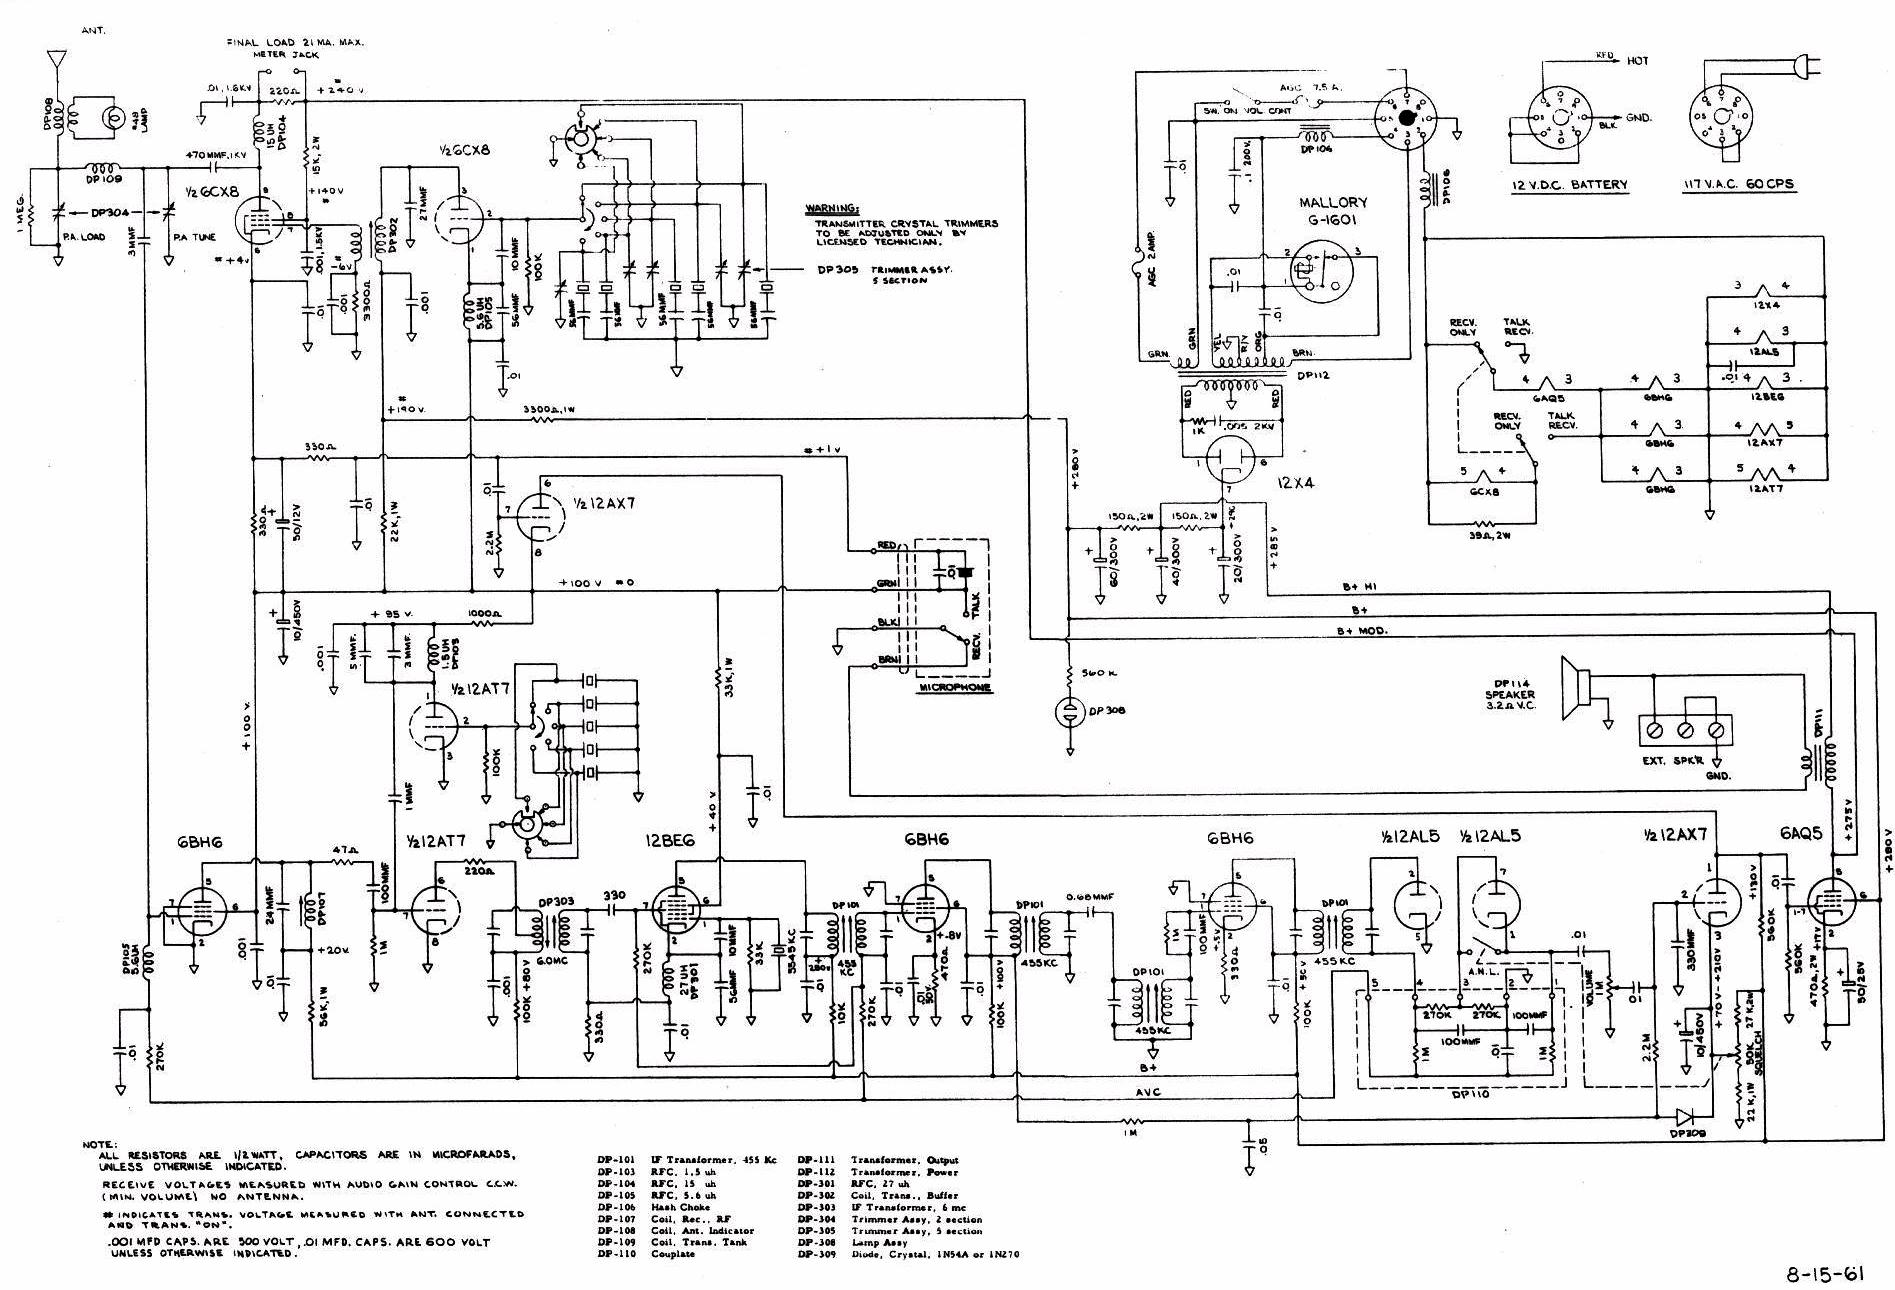 Schematic Drawing The wiring diagram – Draw Wiring Diagram